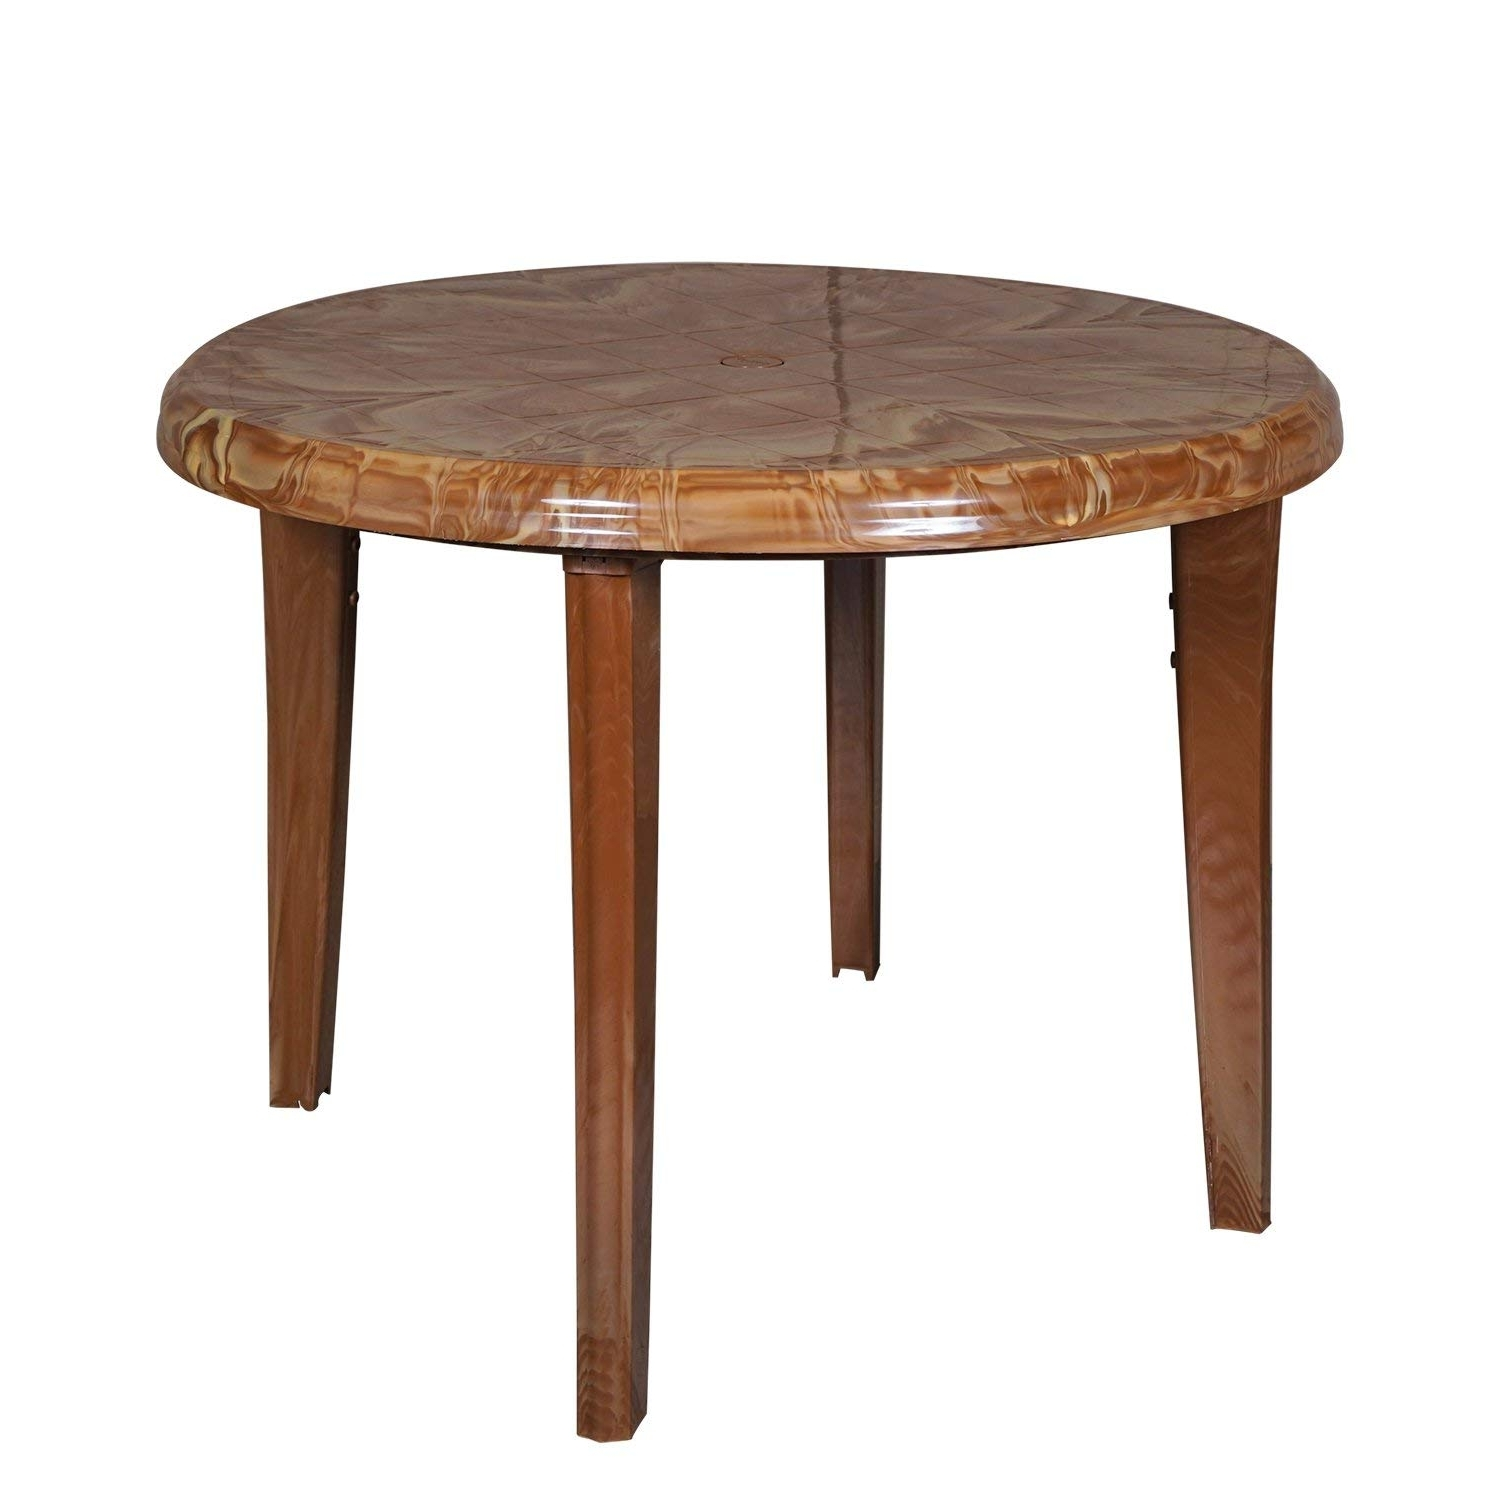 Dining Tables : Buy Dining Tables Online At Low Prices In India throughout Most Recently Released Indian Dining Tables